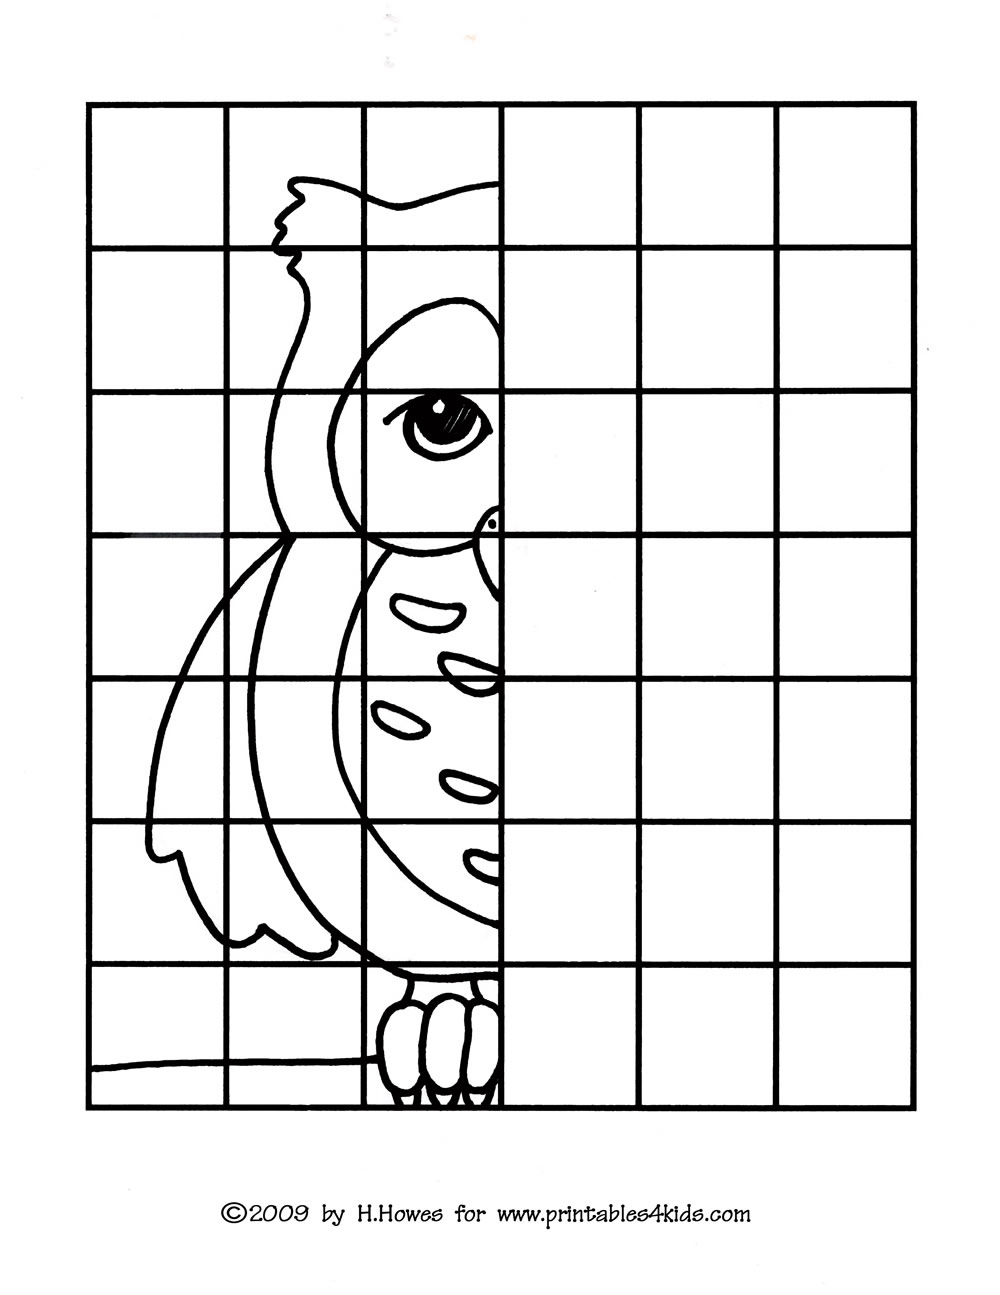 5 Images of Drawing Puzzles Printable